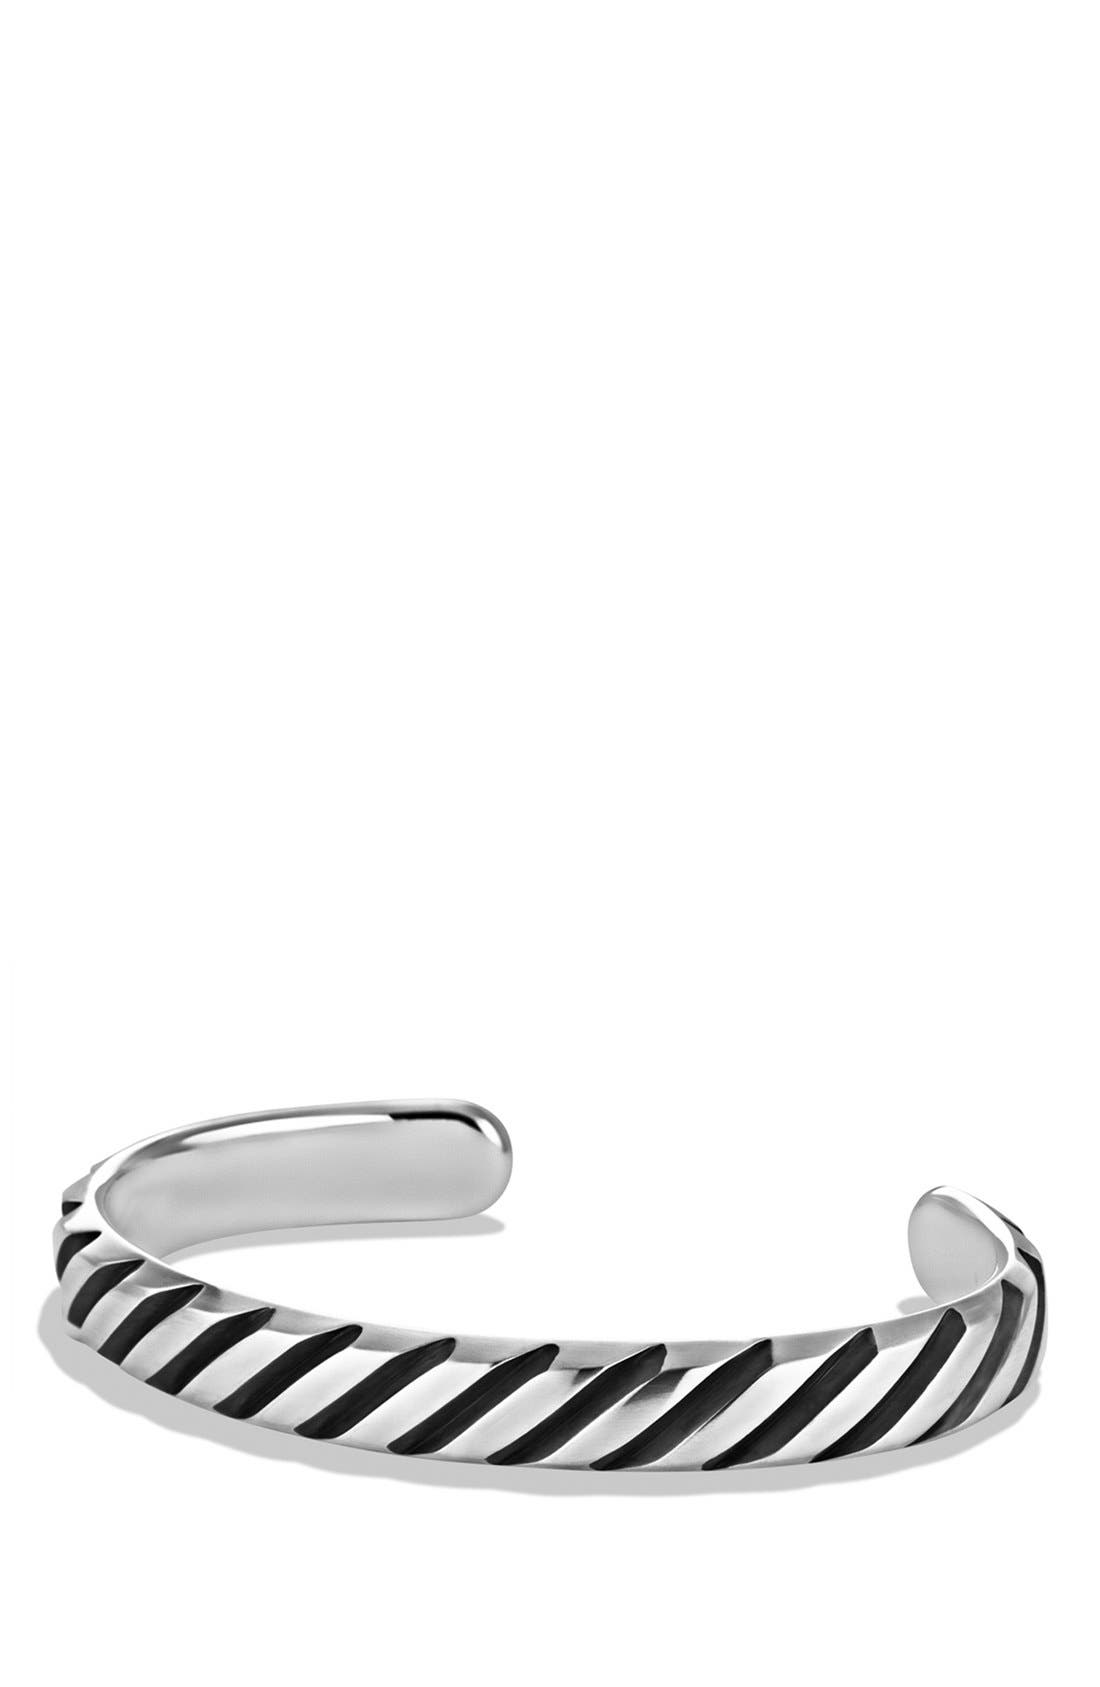 David Yurman 'Cable' Modern Cable Cuff